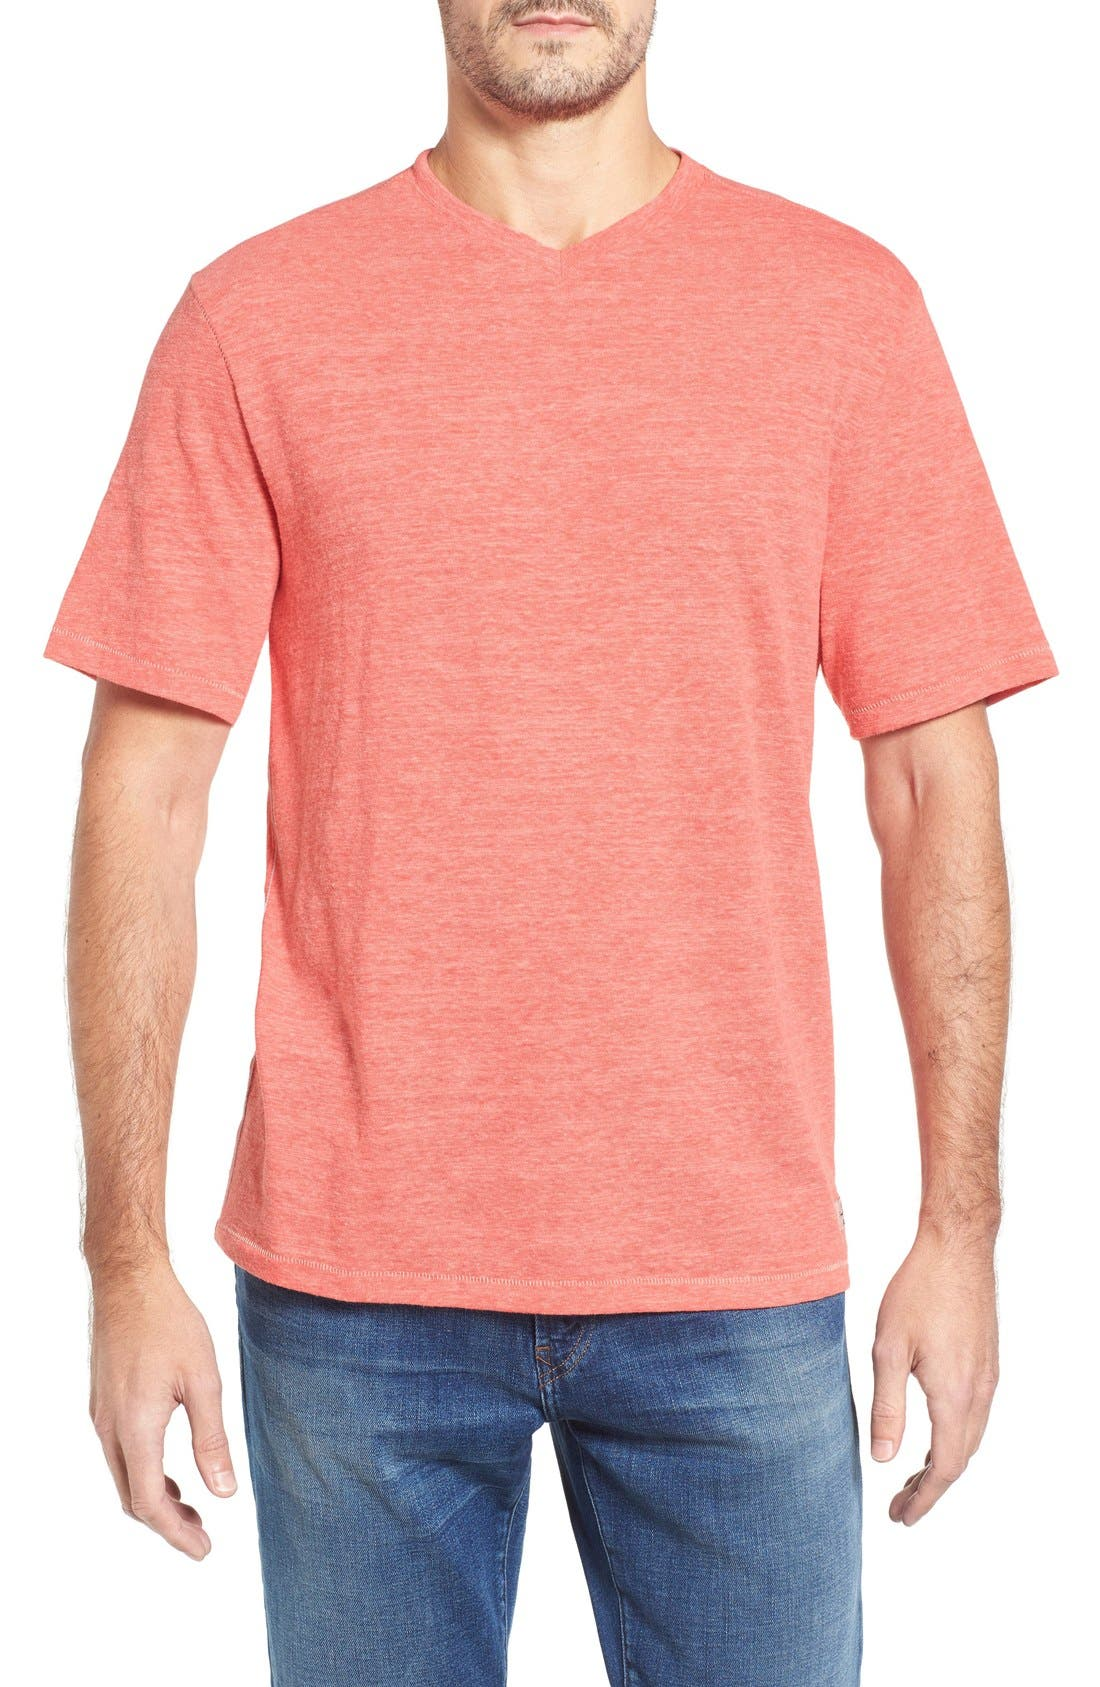 TOMMY BAHAMA Sundays Best V-Neck T-Shirt